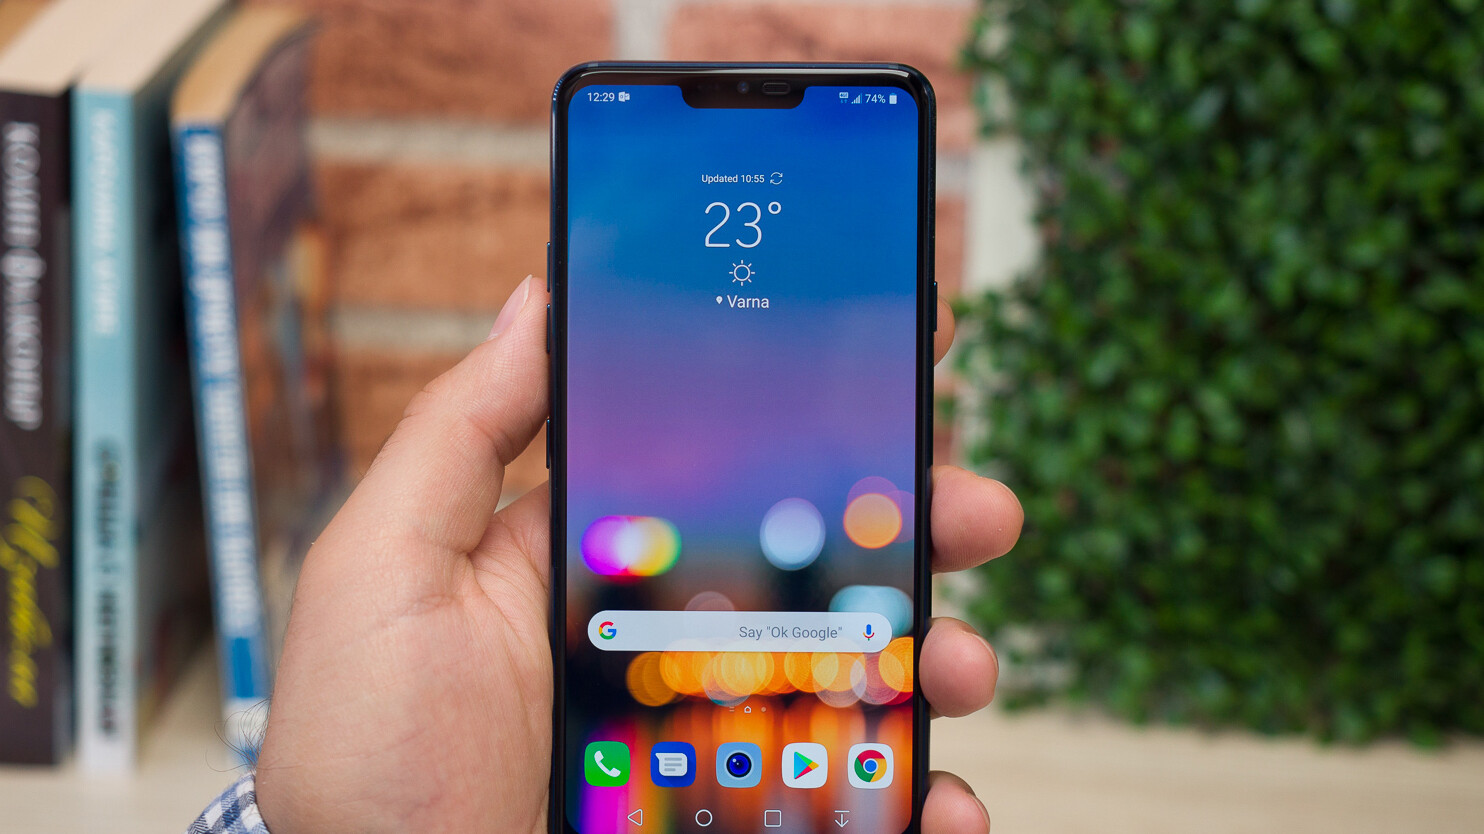 Dc5m United States It In English Created At 2018 07 26 1802 Amazoncom Sg Tool Aid 25100 Short Tester Automotive Pular E Tailer Bh Photo Video Has Just Revealed That Will Be Selling The Unlocked Lg G7 Thinq Platinum Gray A Serious Discount For Next